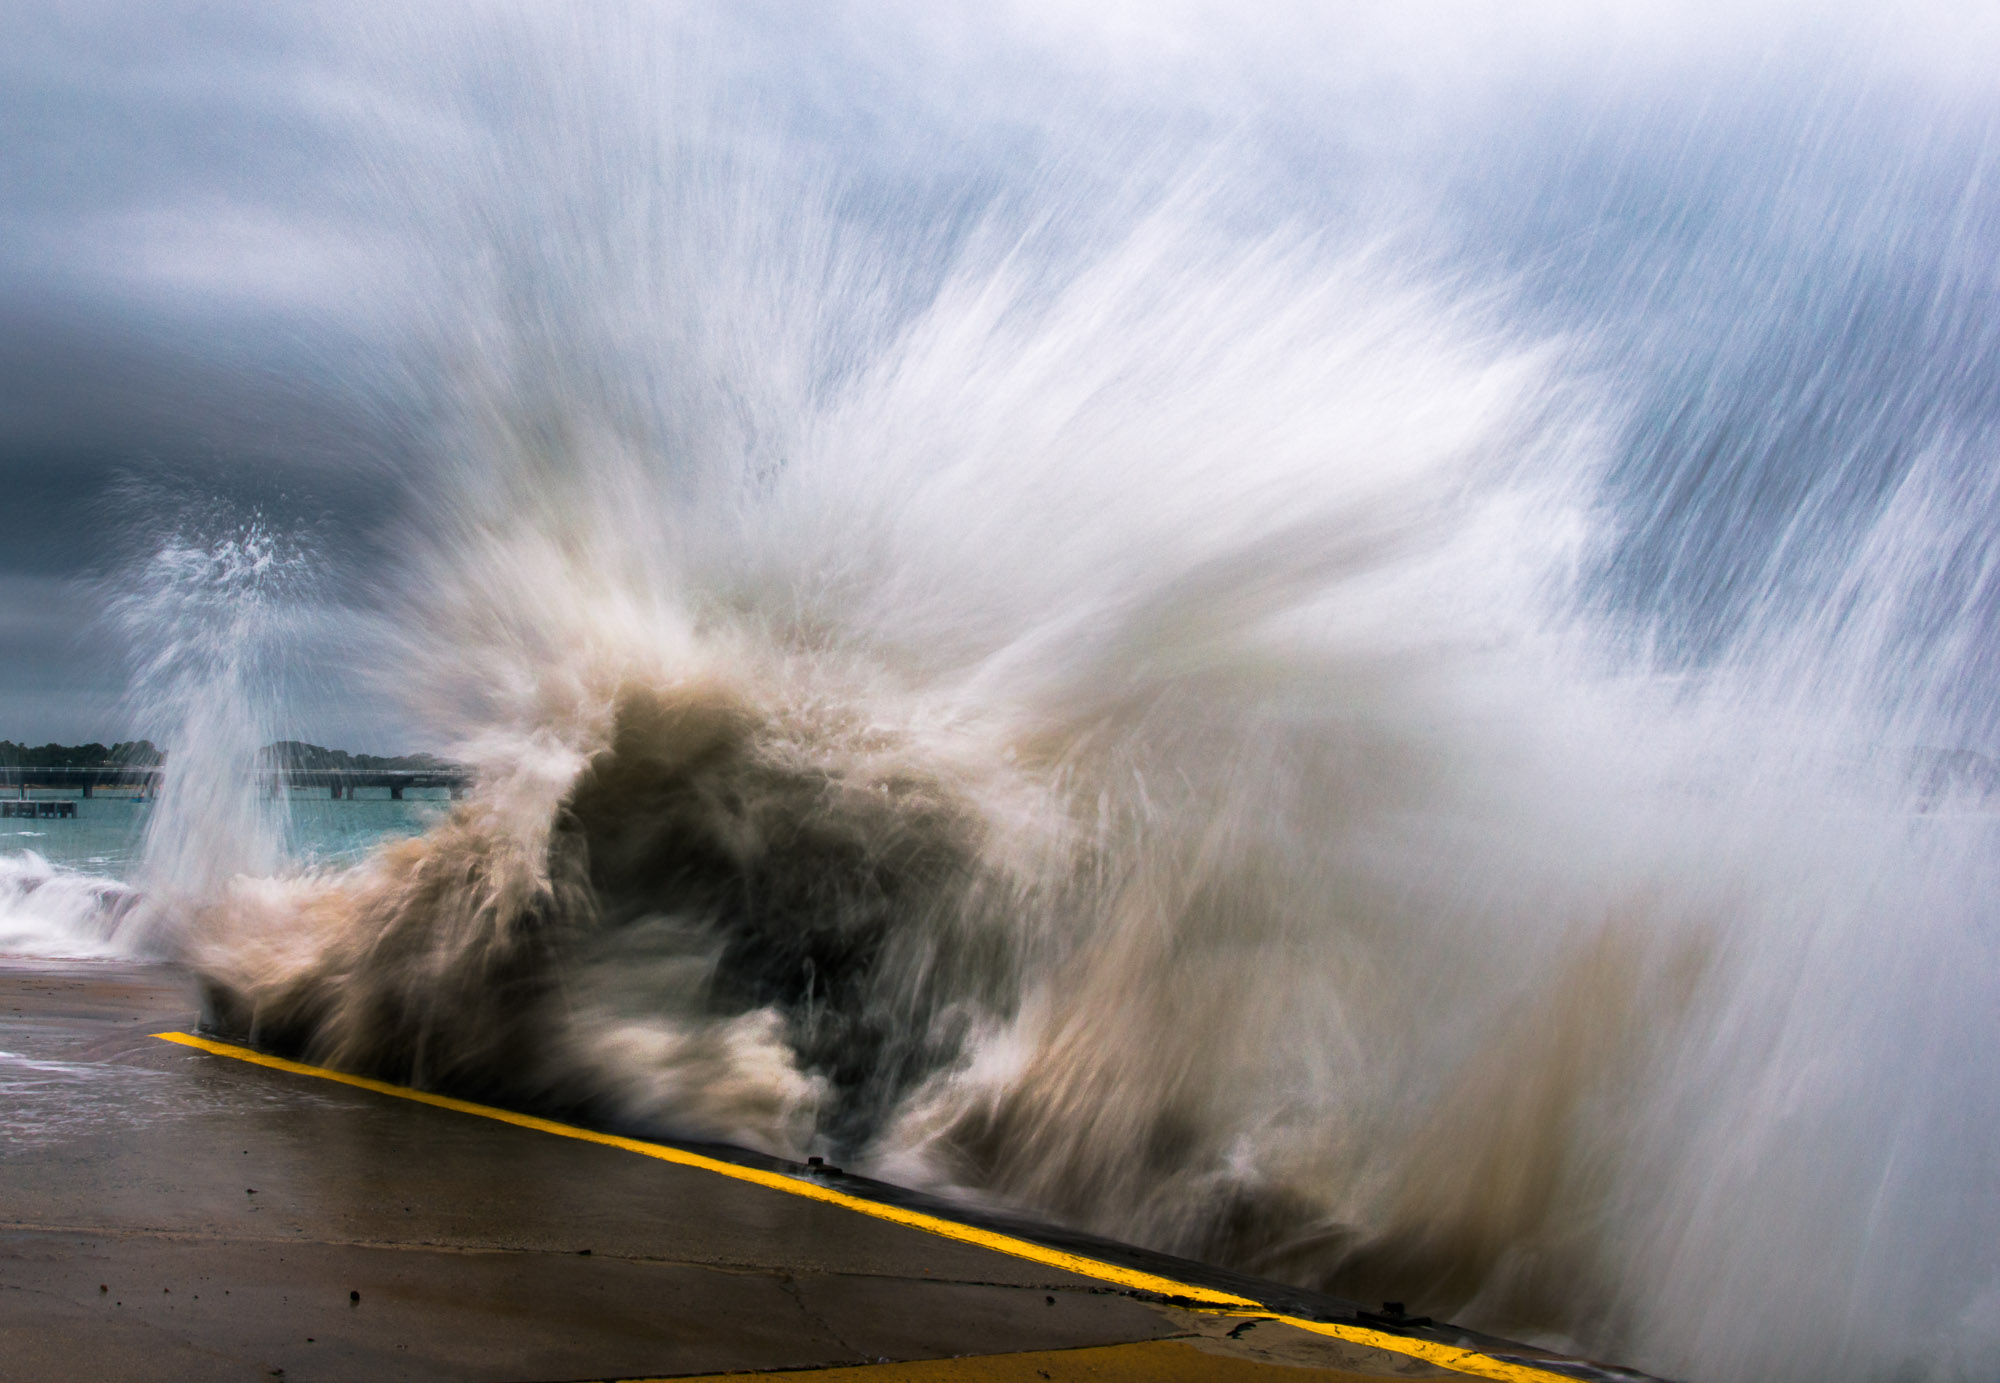 Wave crashing against seawall - Barwon Heads, Victoria, Australia